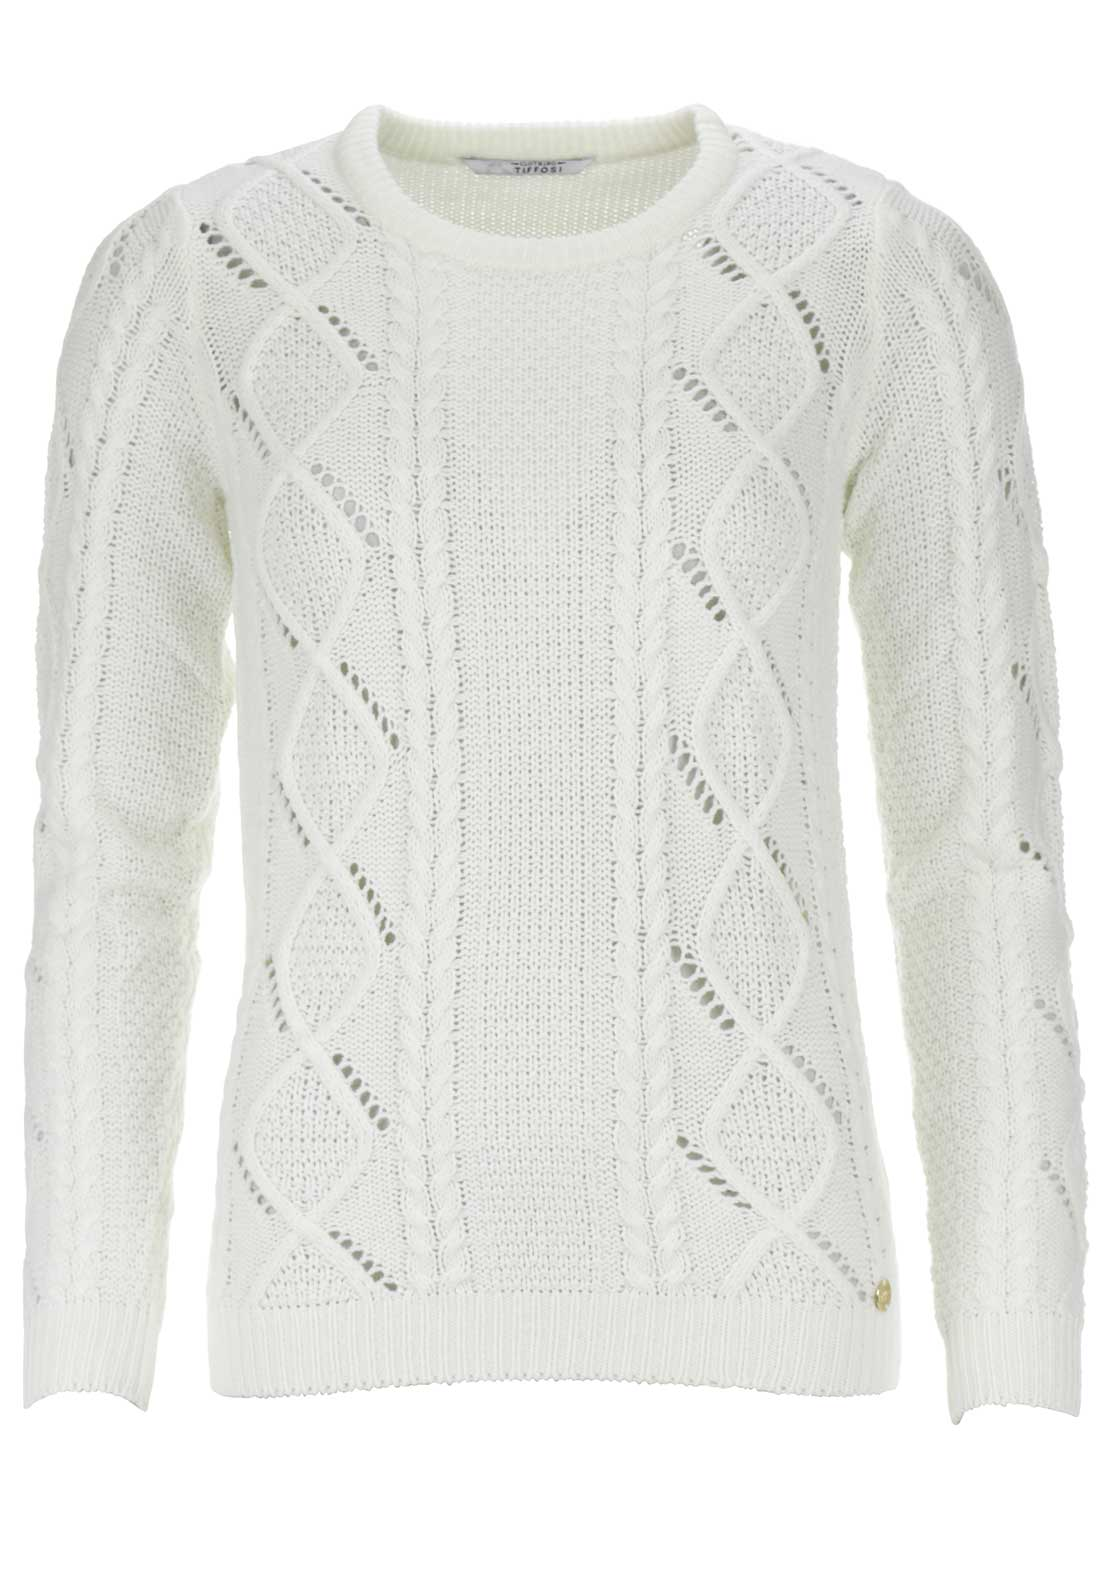 Tiffosi Womens Lela Cable Knit Jumper, Cream